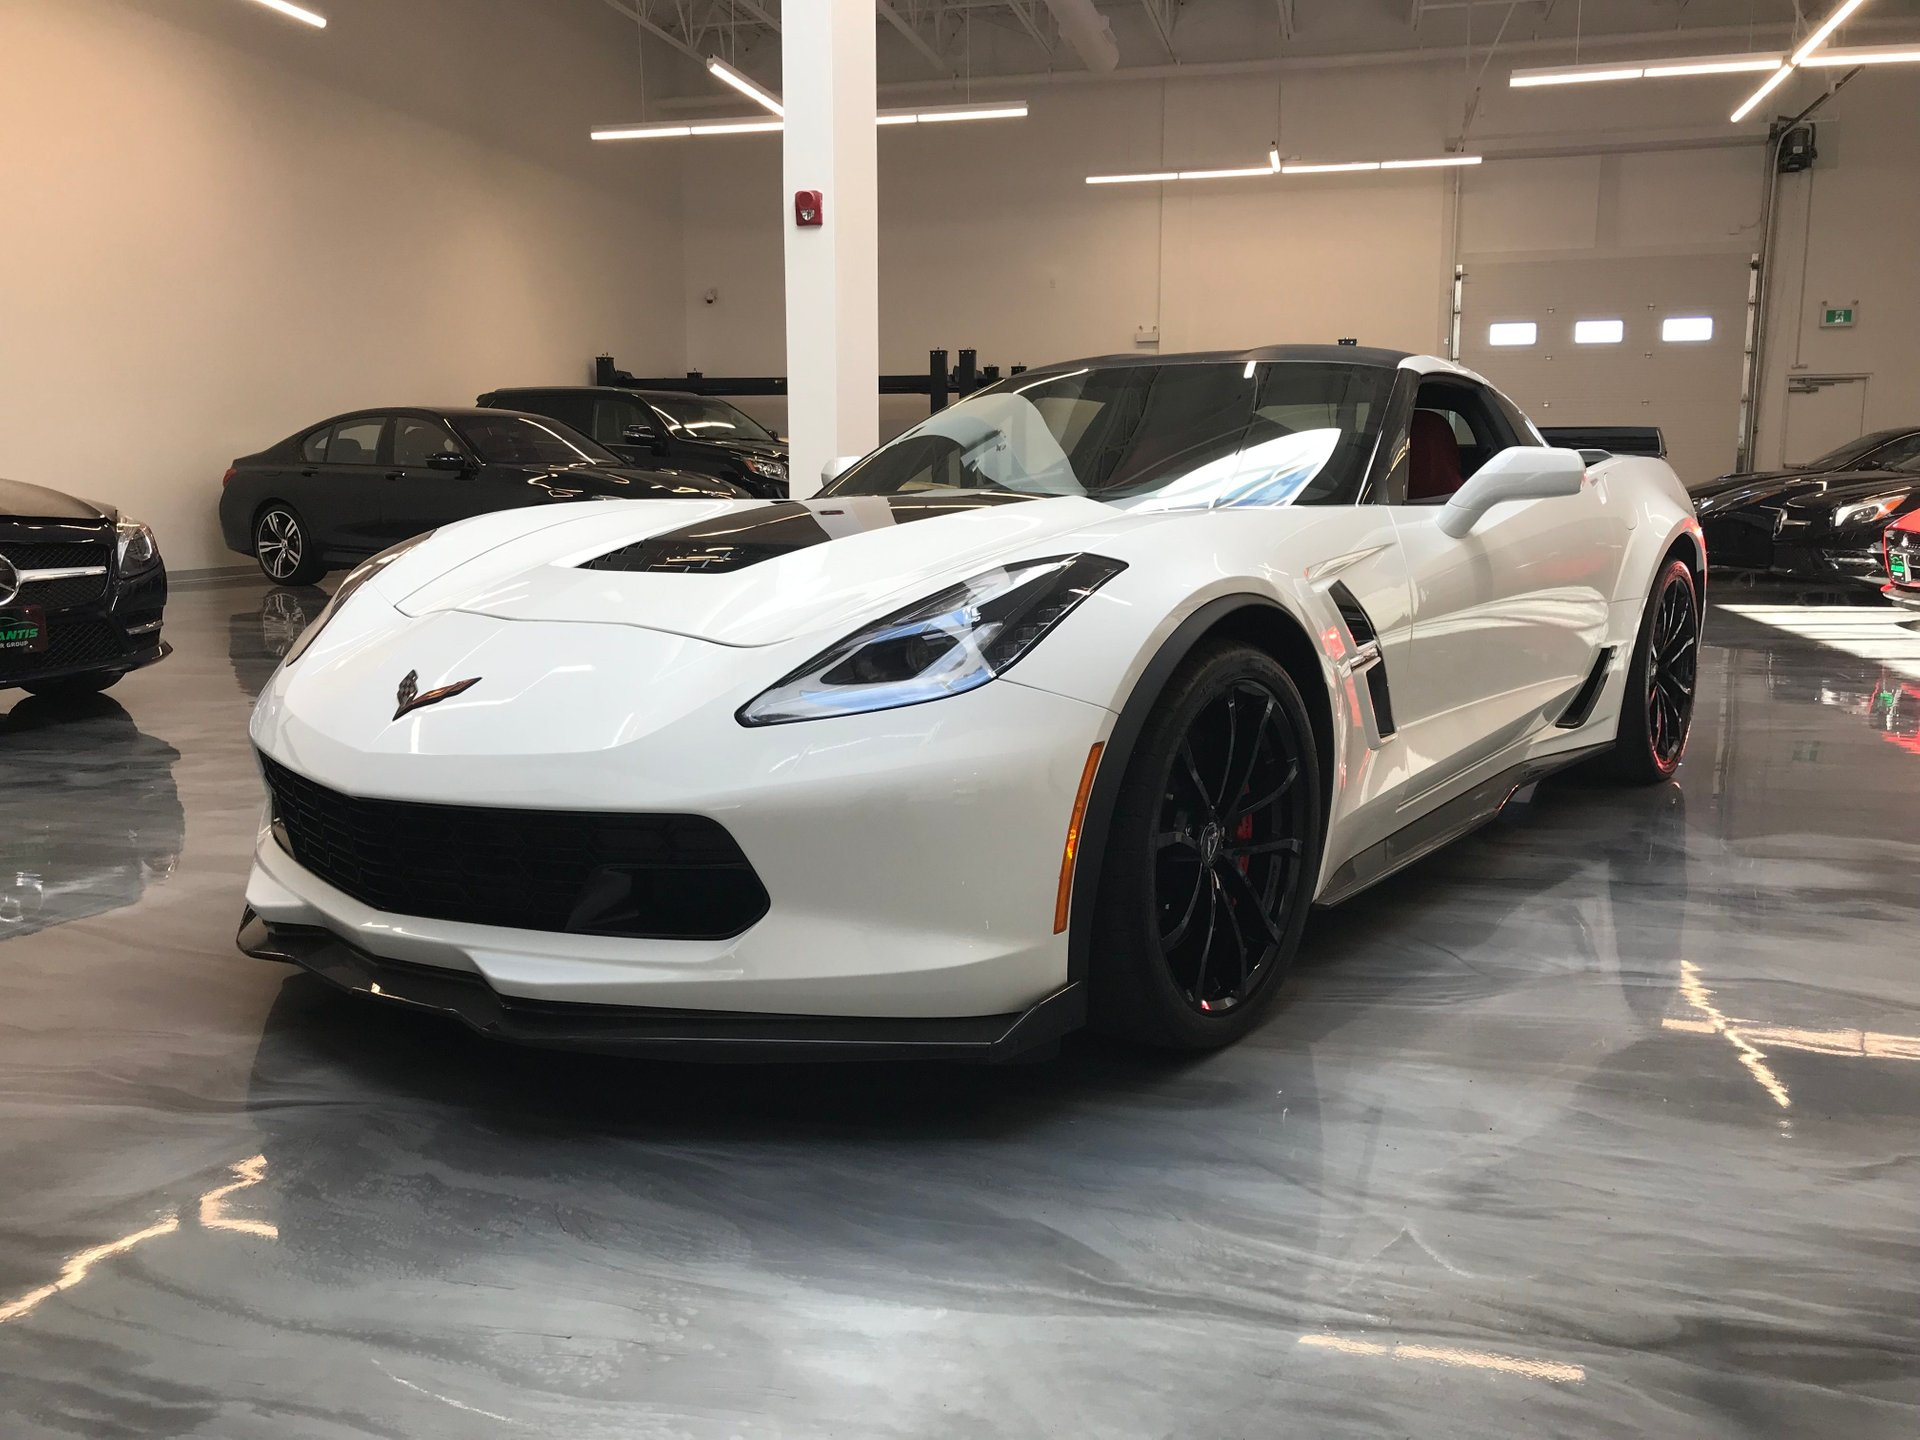 2018 chevrolet corvette grand sport sold sold